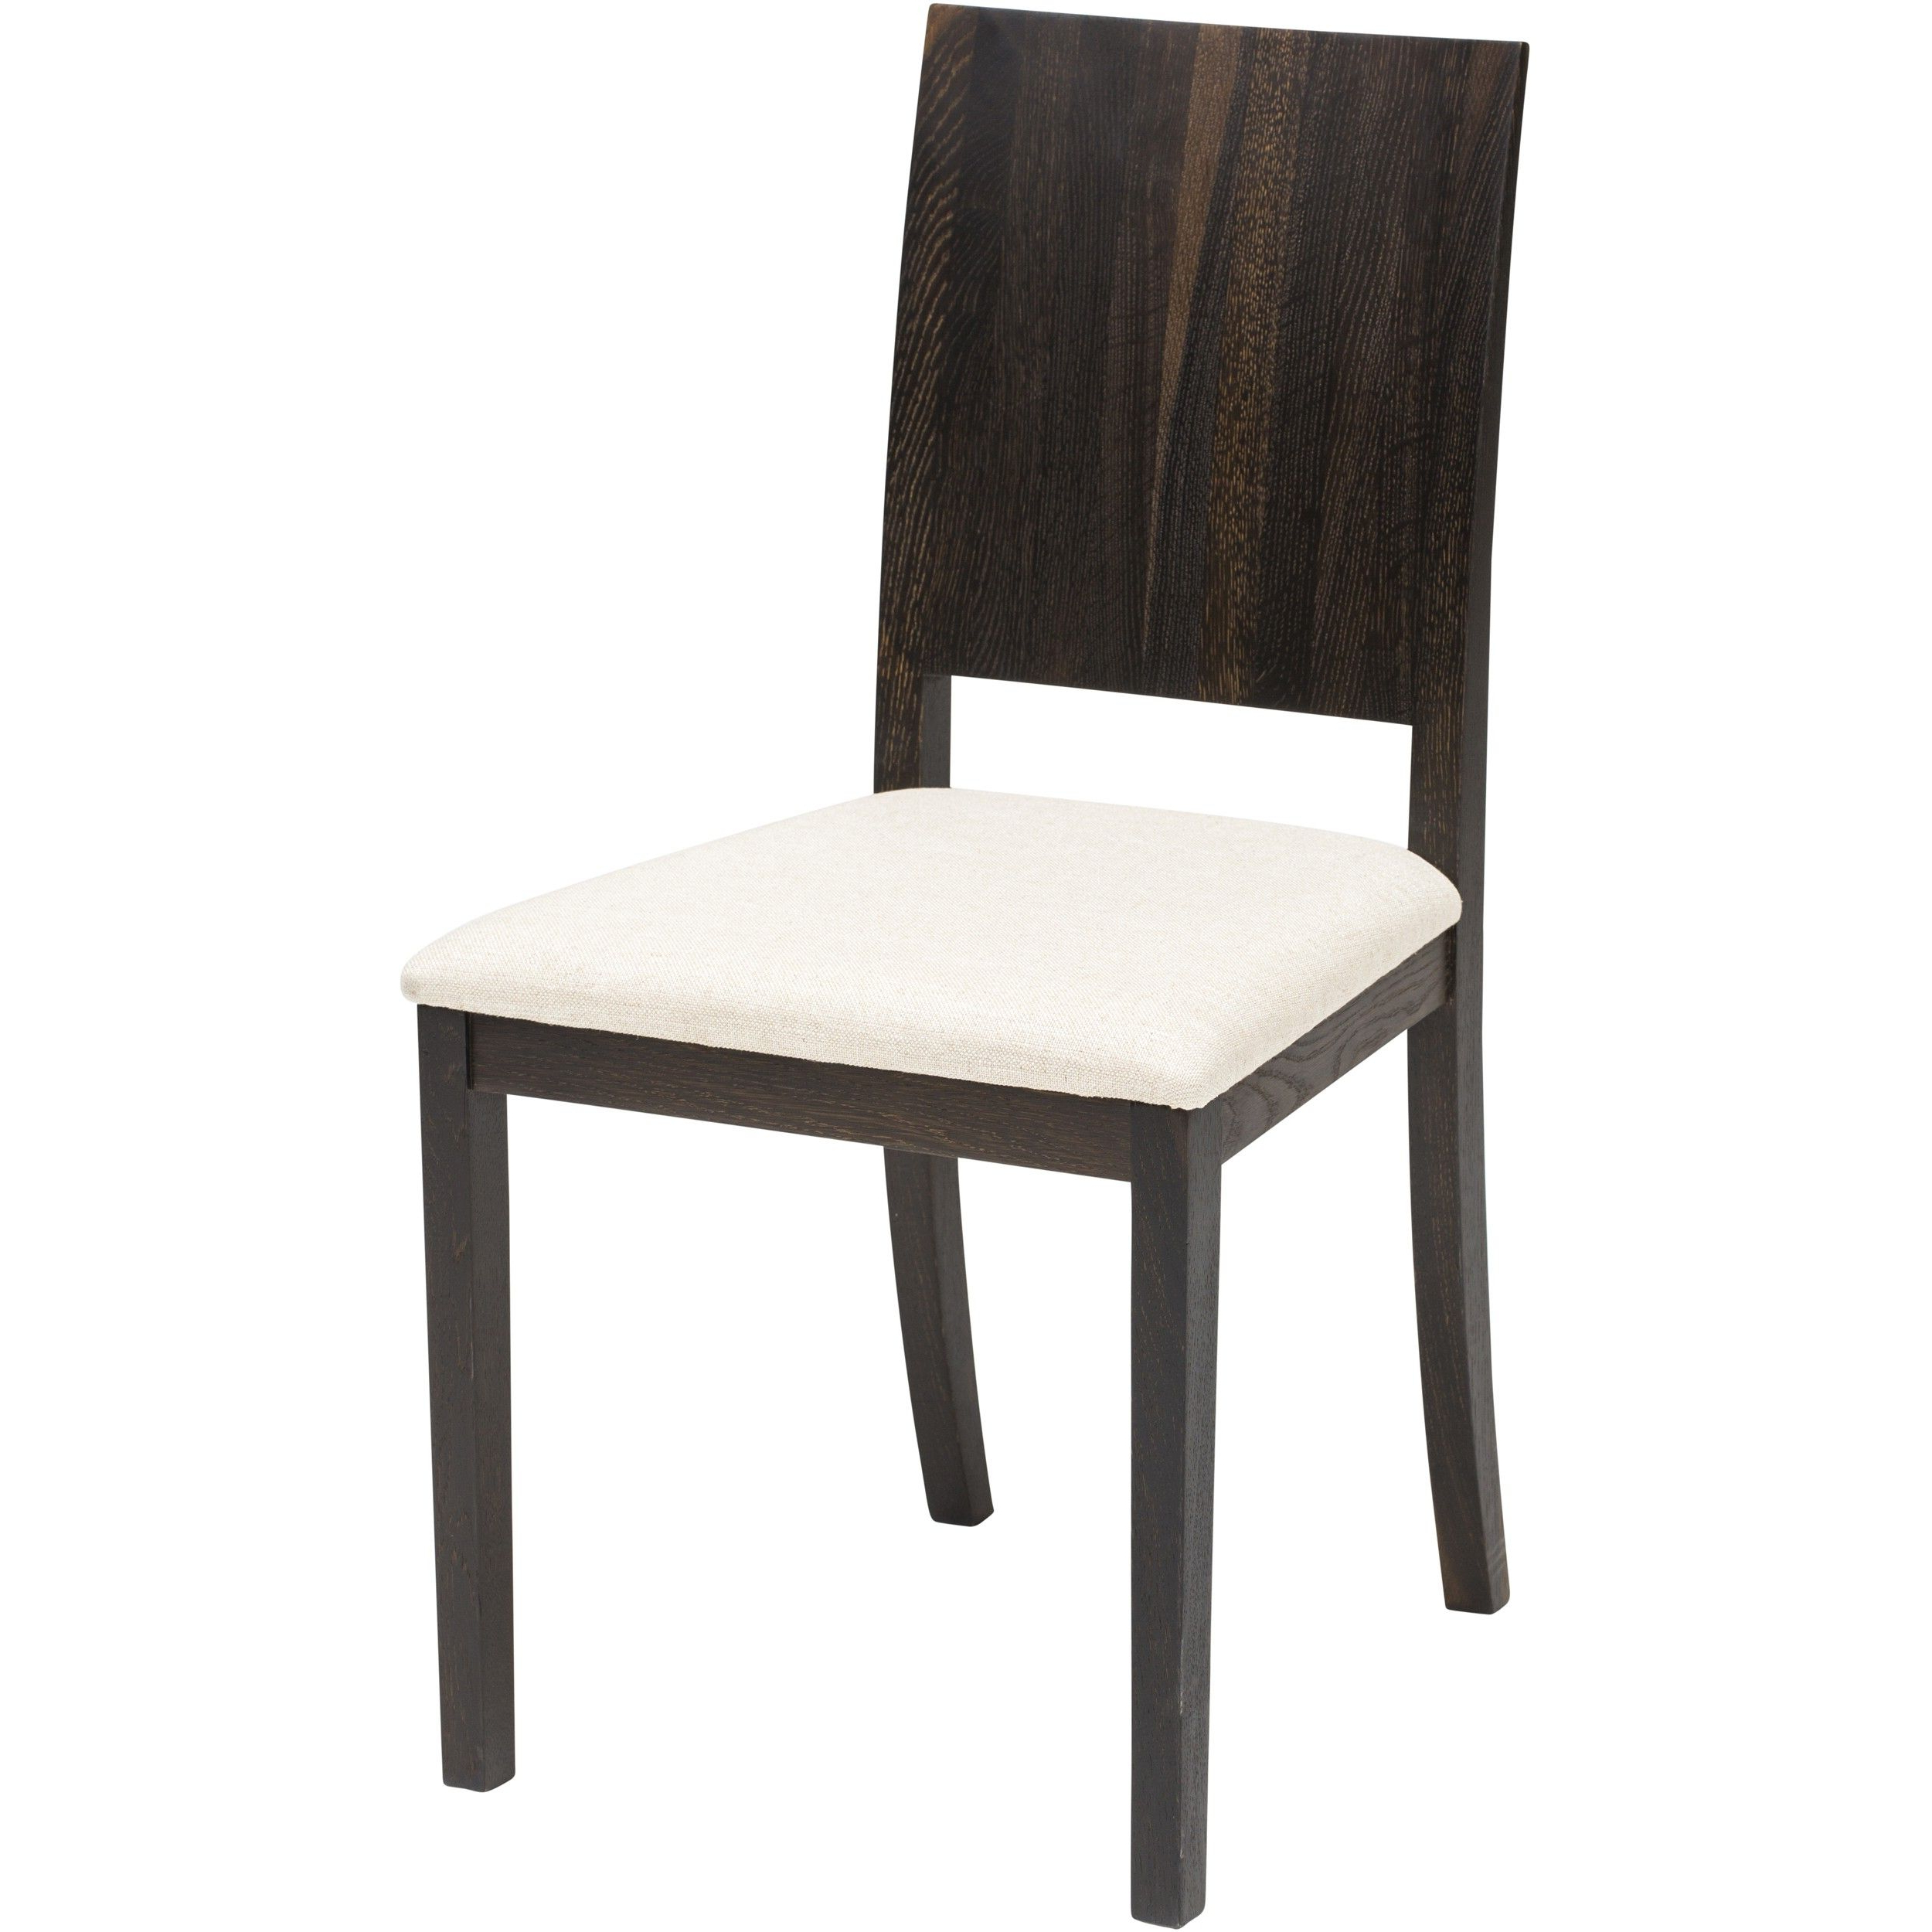 Newest Dining Tables In Smoked Seared Oak With Obi Dining Chair, Seared Oak – Furniture – Dining – Chairs (Gallery 14 of 30)